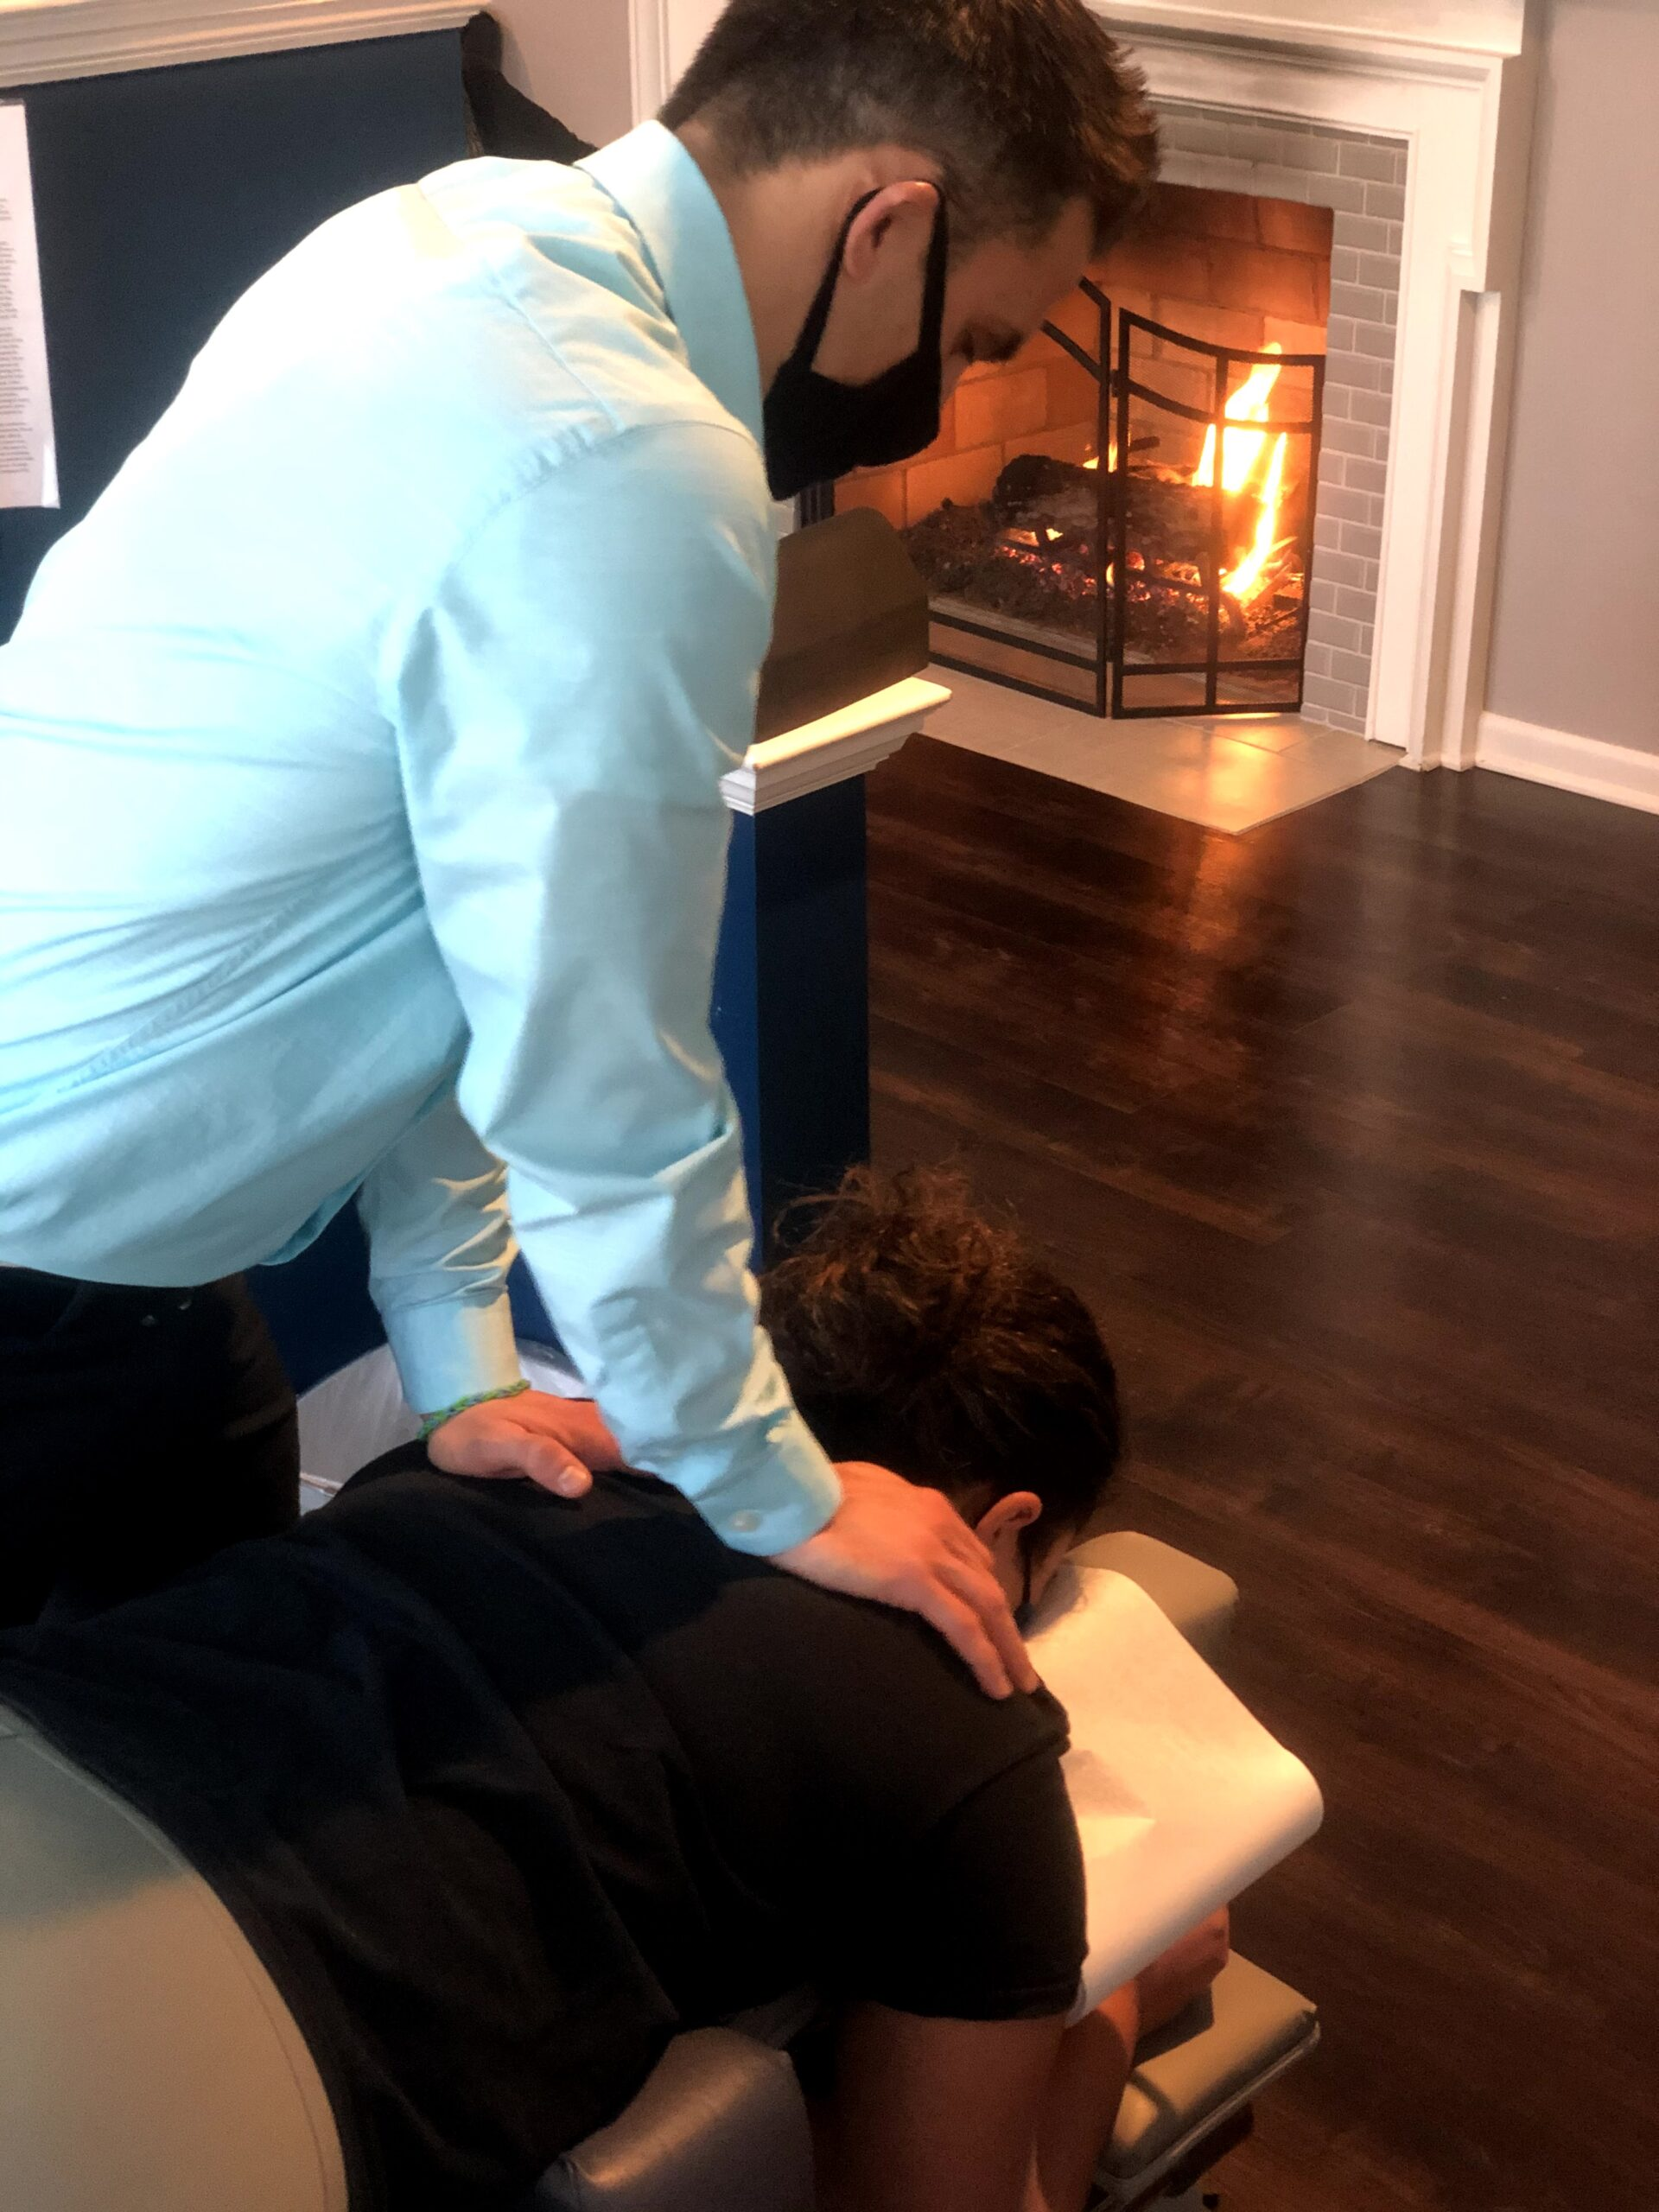 The Top 5 Reasons for Chiropractic Adjustments